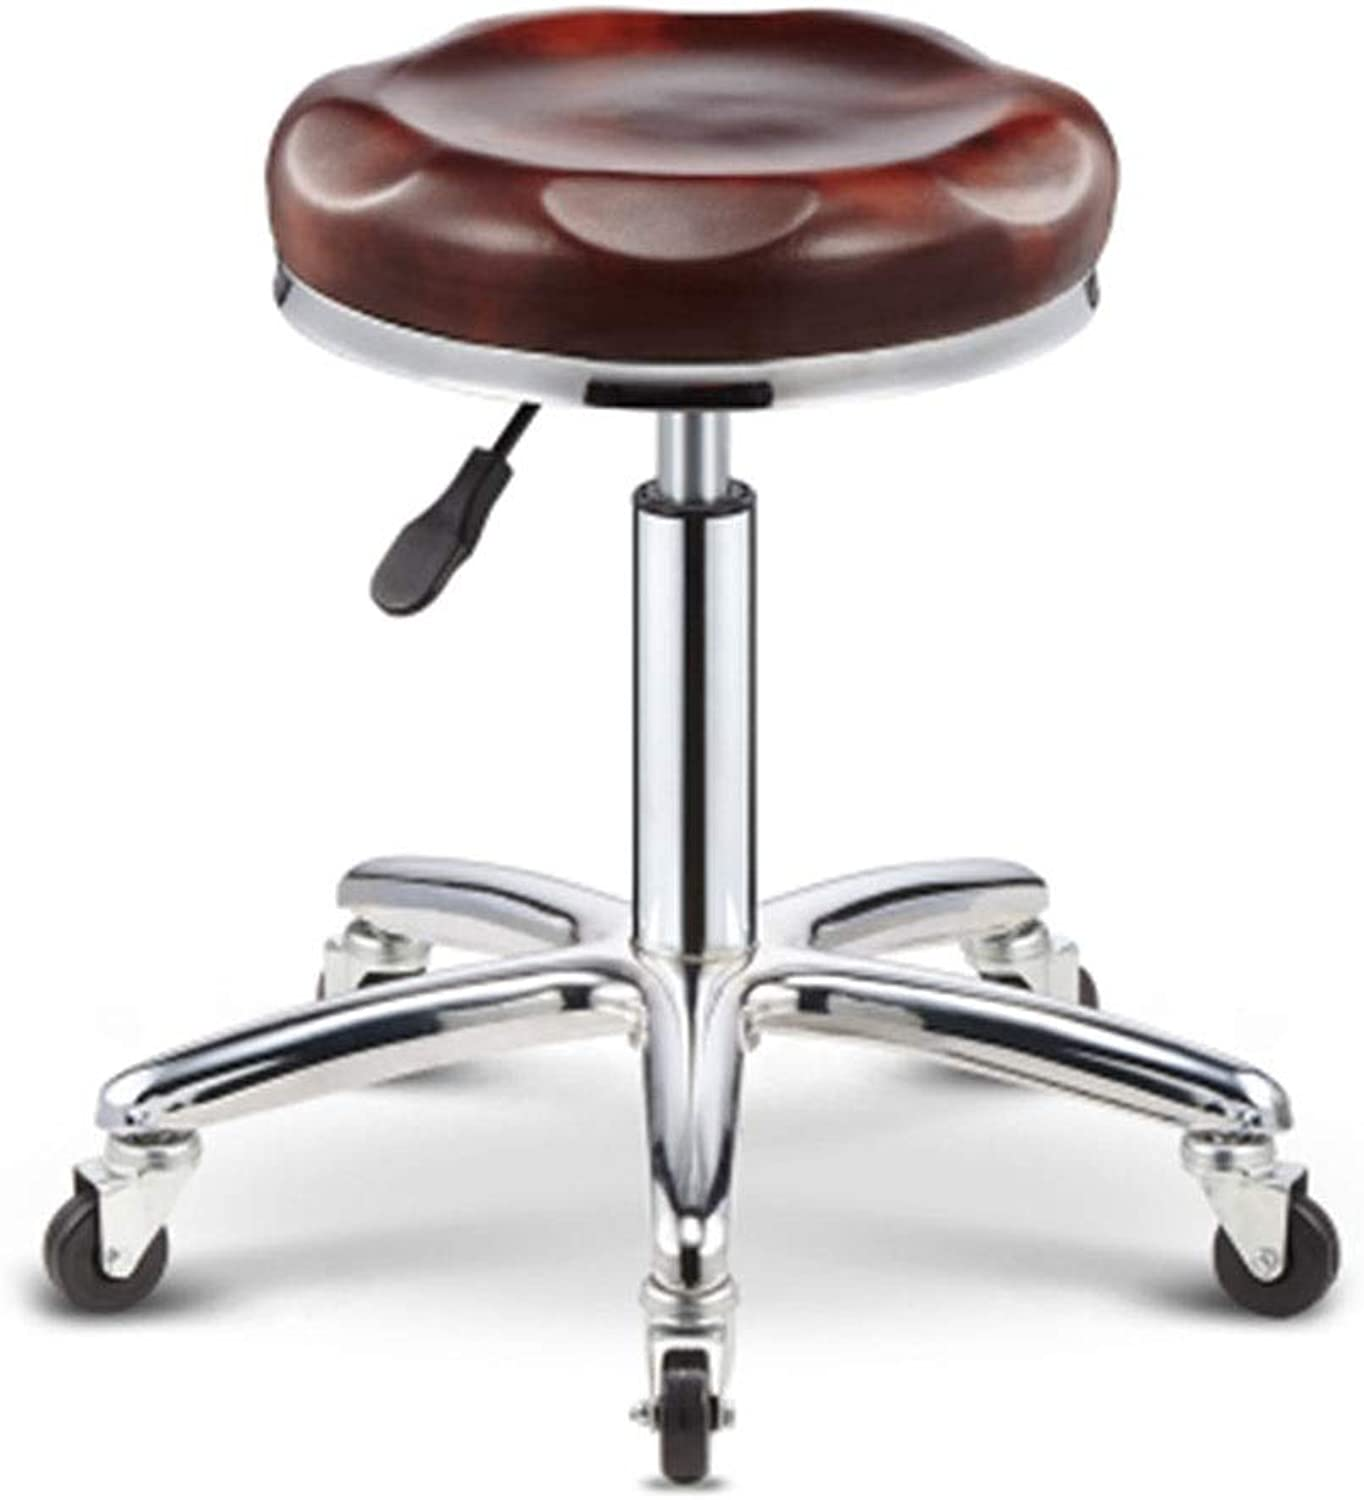 Bar Chair Beauty Stool Barber Chair redate Lifting Stool Work Bench Pulley Round 7 colors 1 Size (color   E)